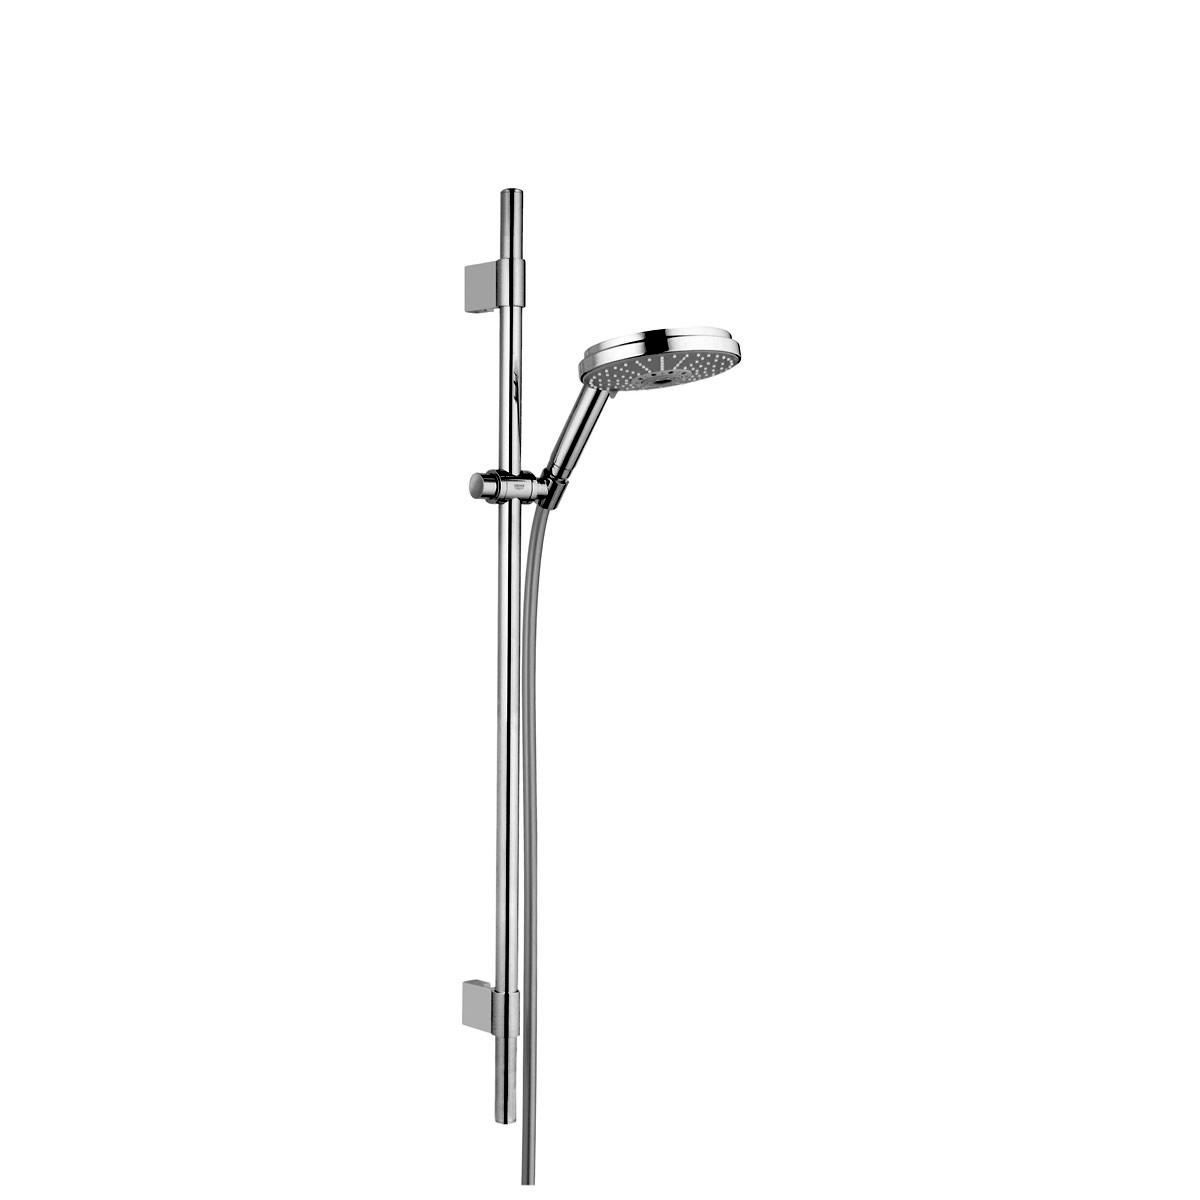 Duschbrause Set Grohe Duschbrause Set